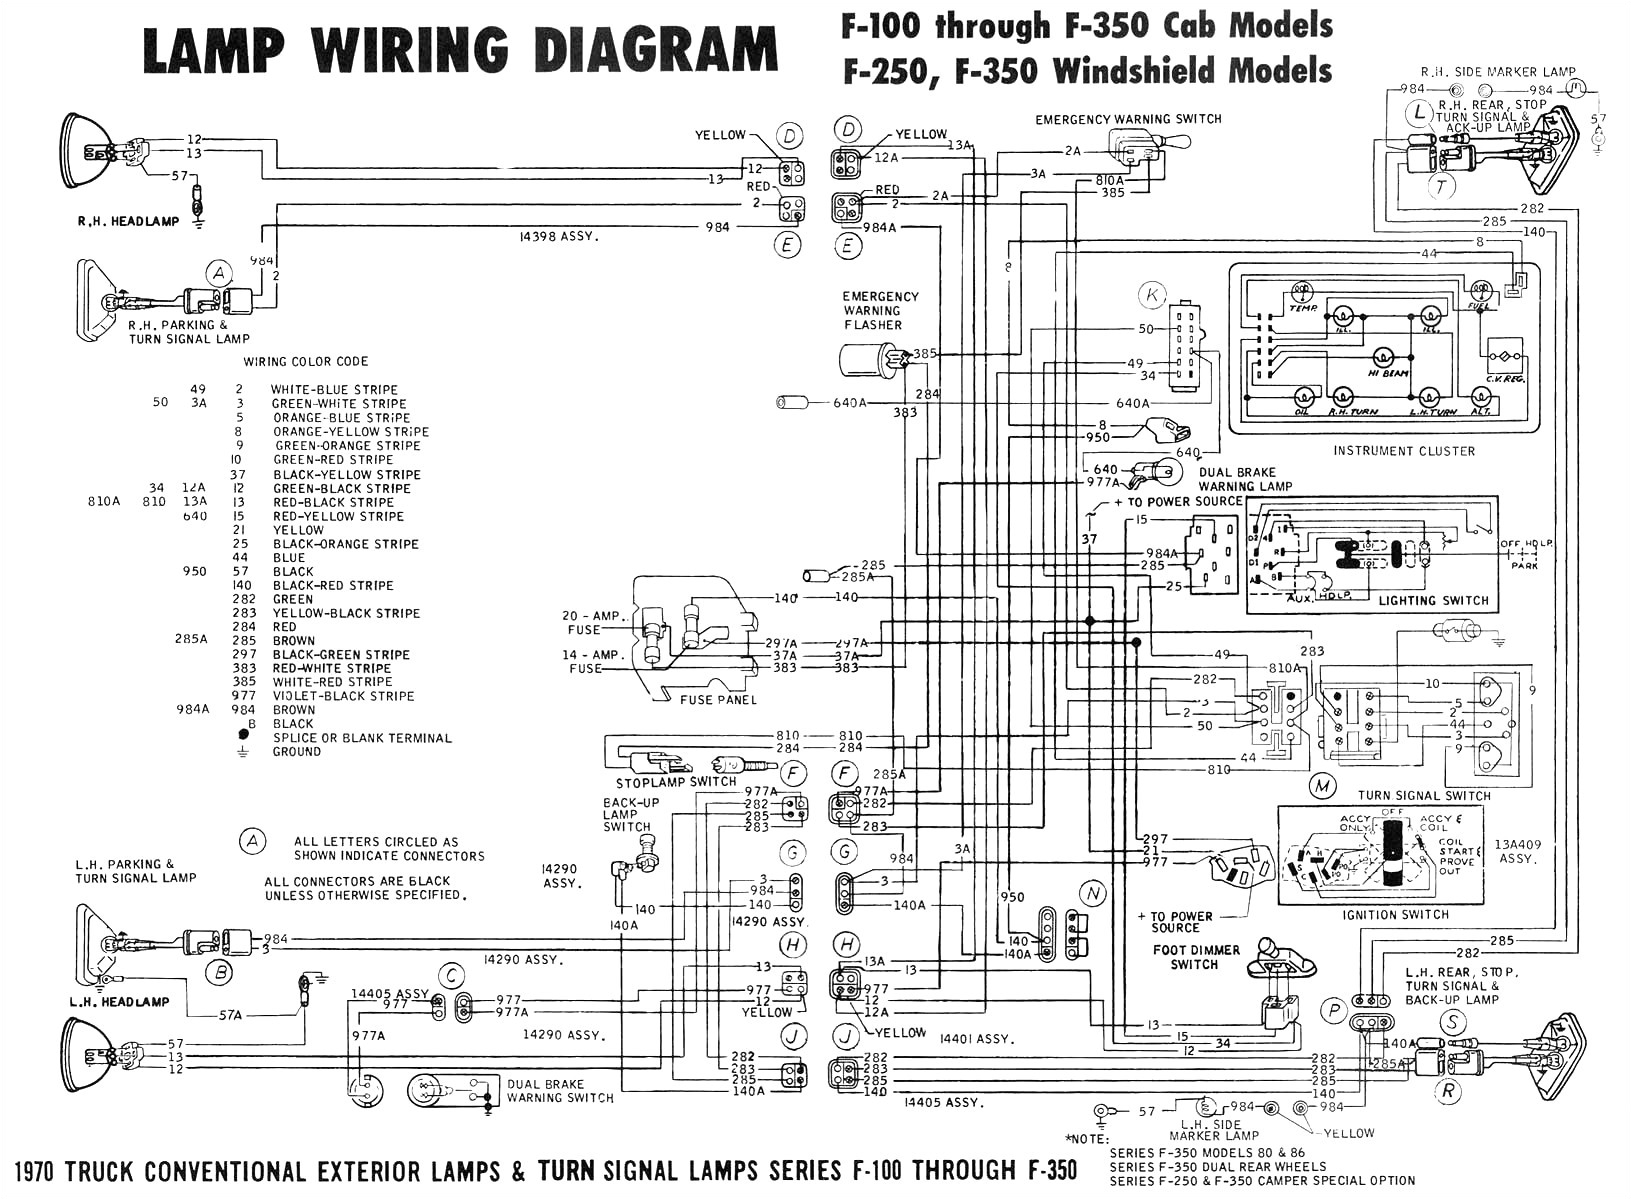 1999 ford f 150 lights wiring diagram wiring diagram view 1997 f150 dome light wiring diagram 1997 ford f 150 dome light wiring diagram